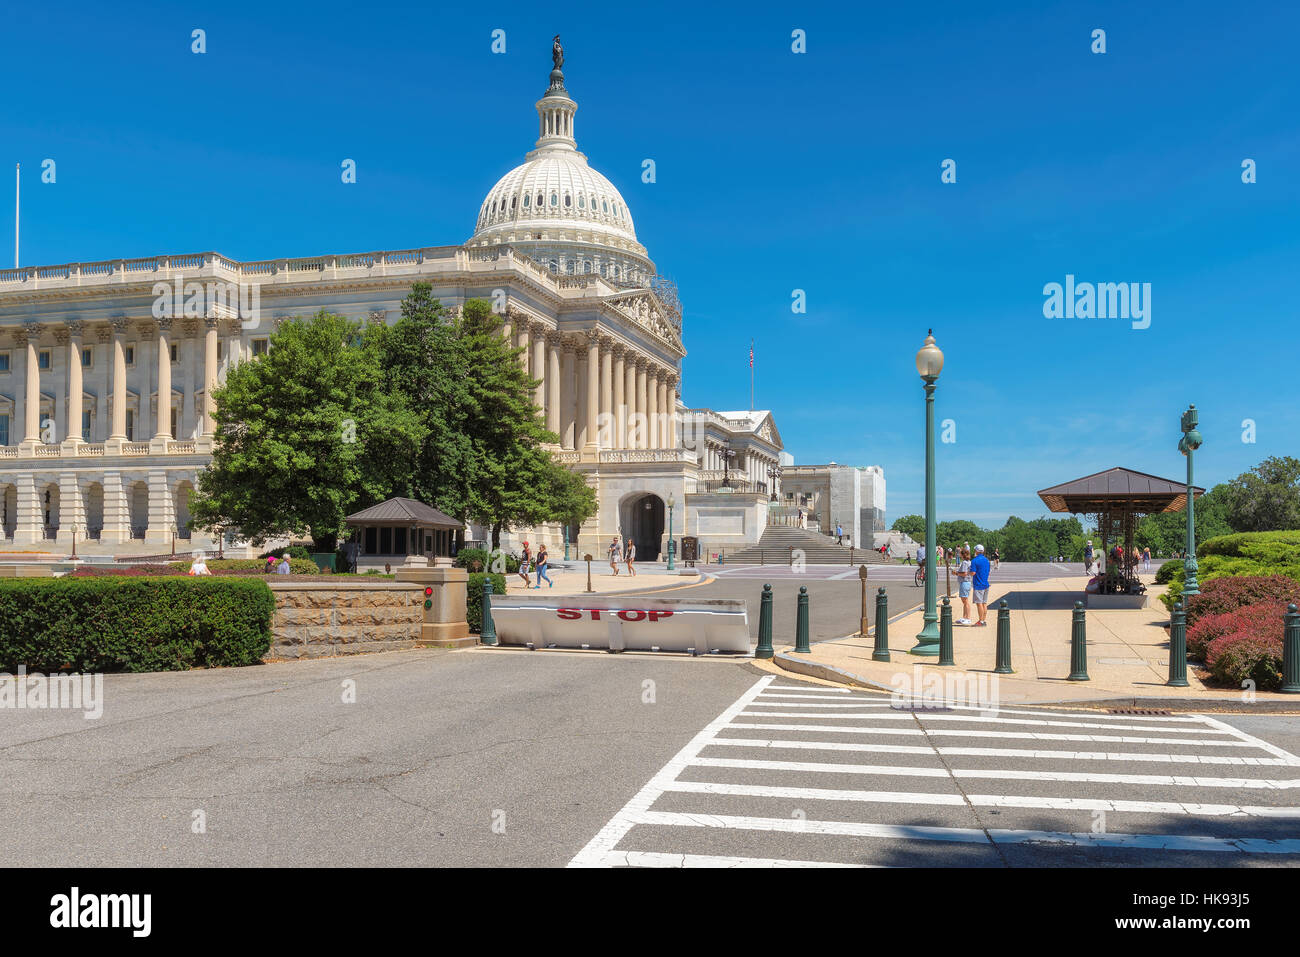 United states Capitol on a summer day with tourists in Washington DC. - Stock Image